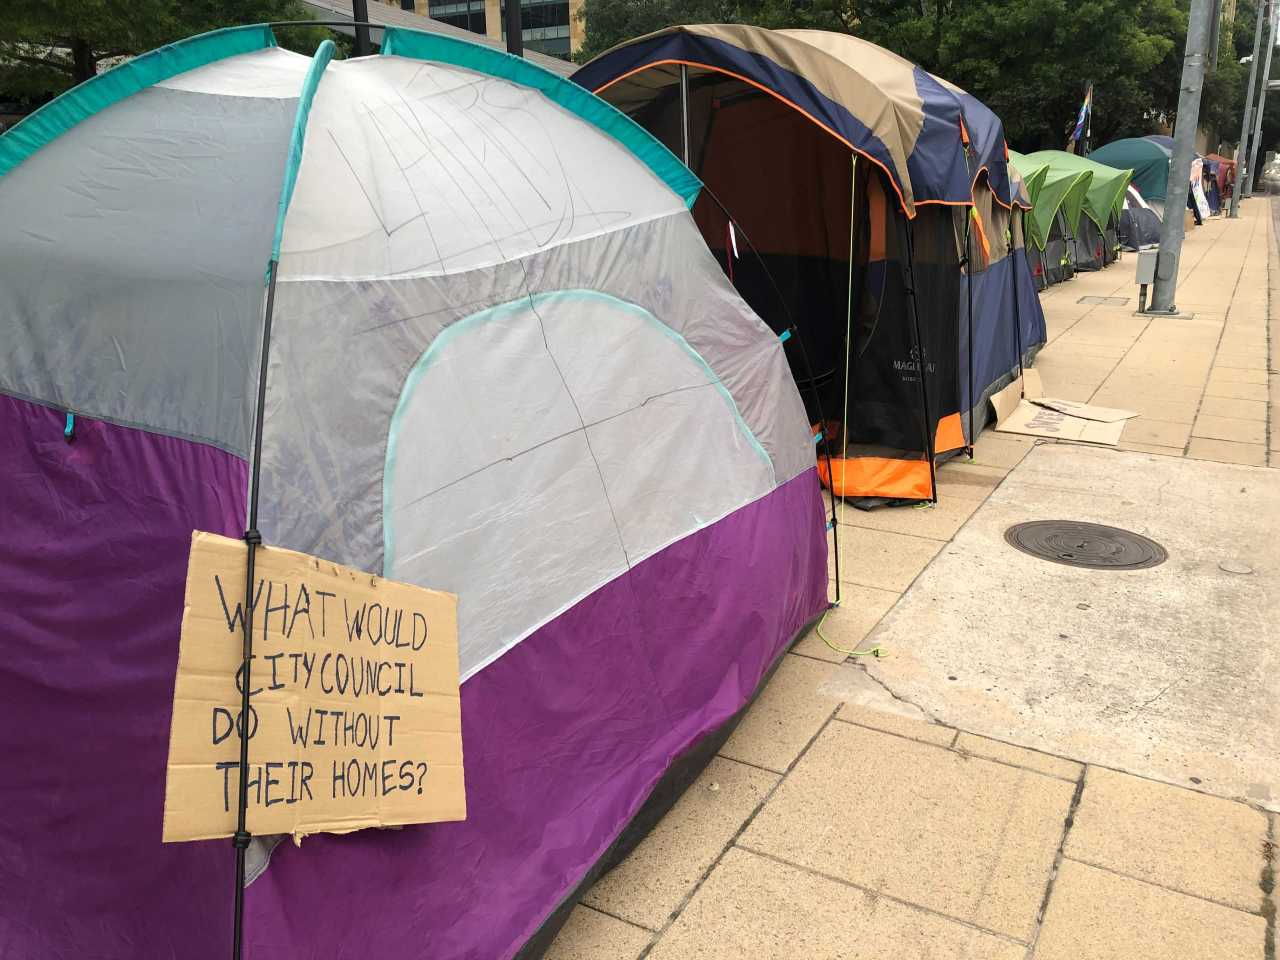 Here are the 4 phases of Austin's camping ban